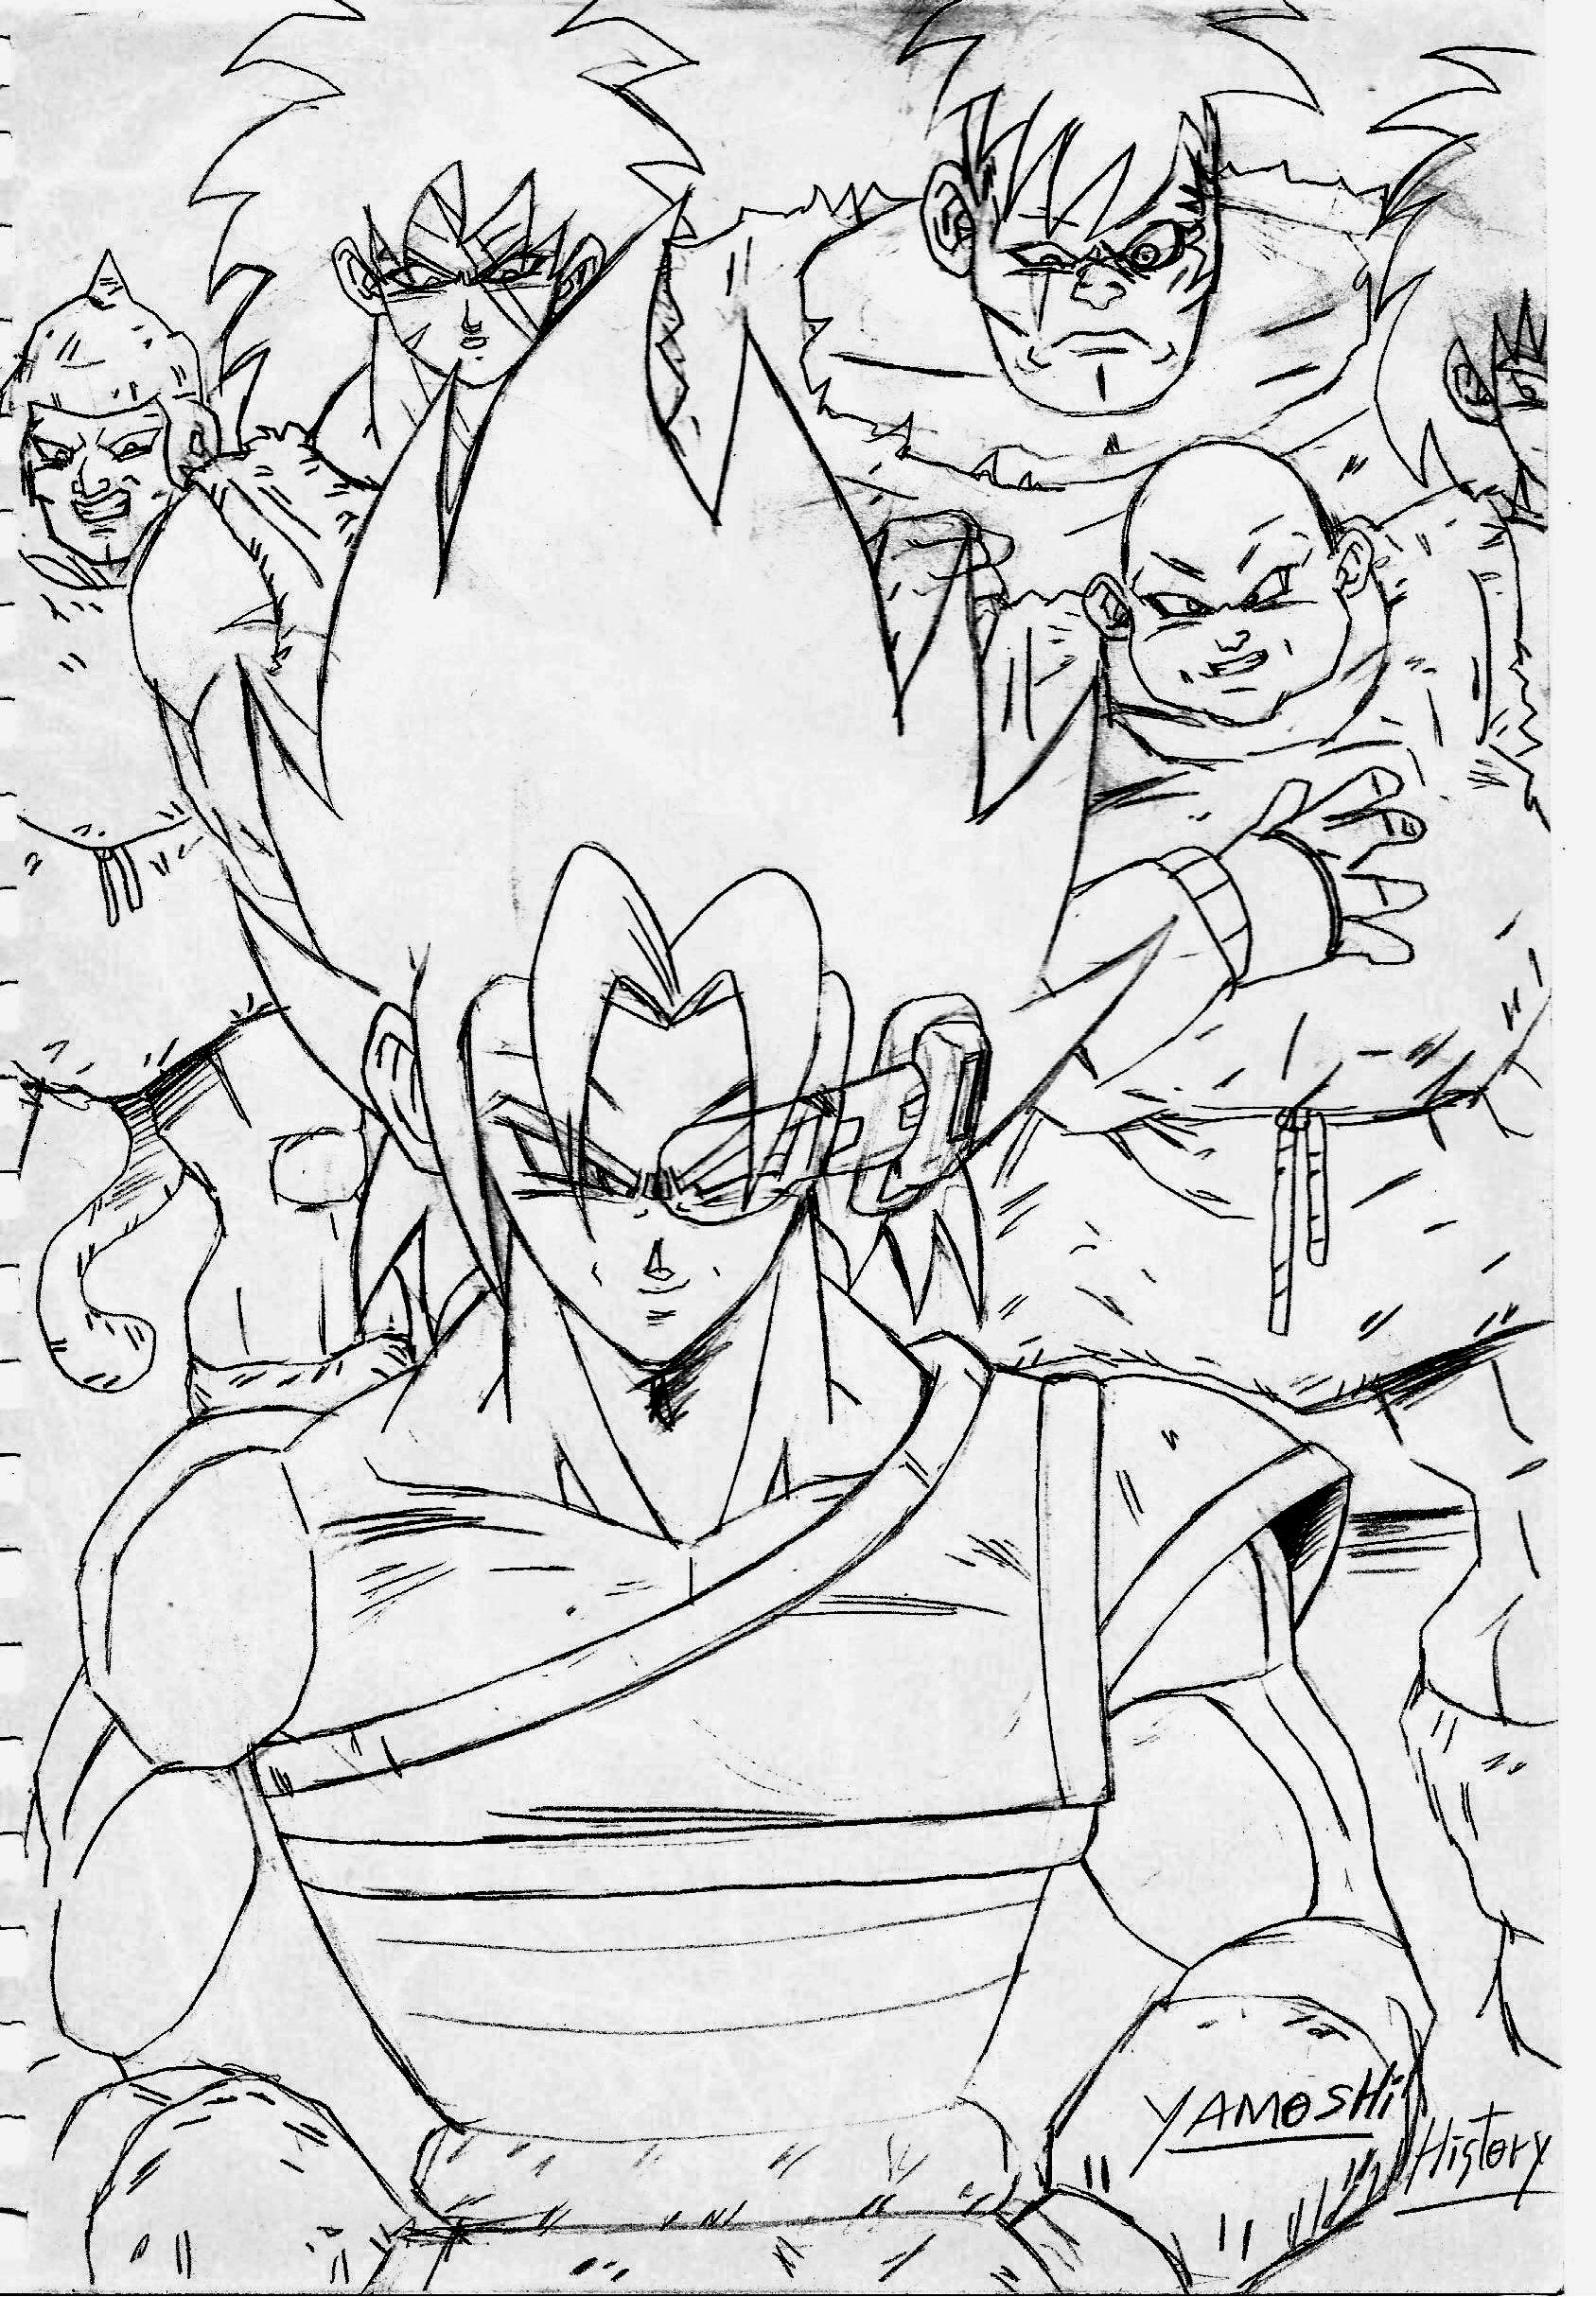 Yamoshi Libro de Relatos de Namek By Julianartfan | Dragon ball Z ...